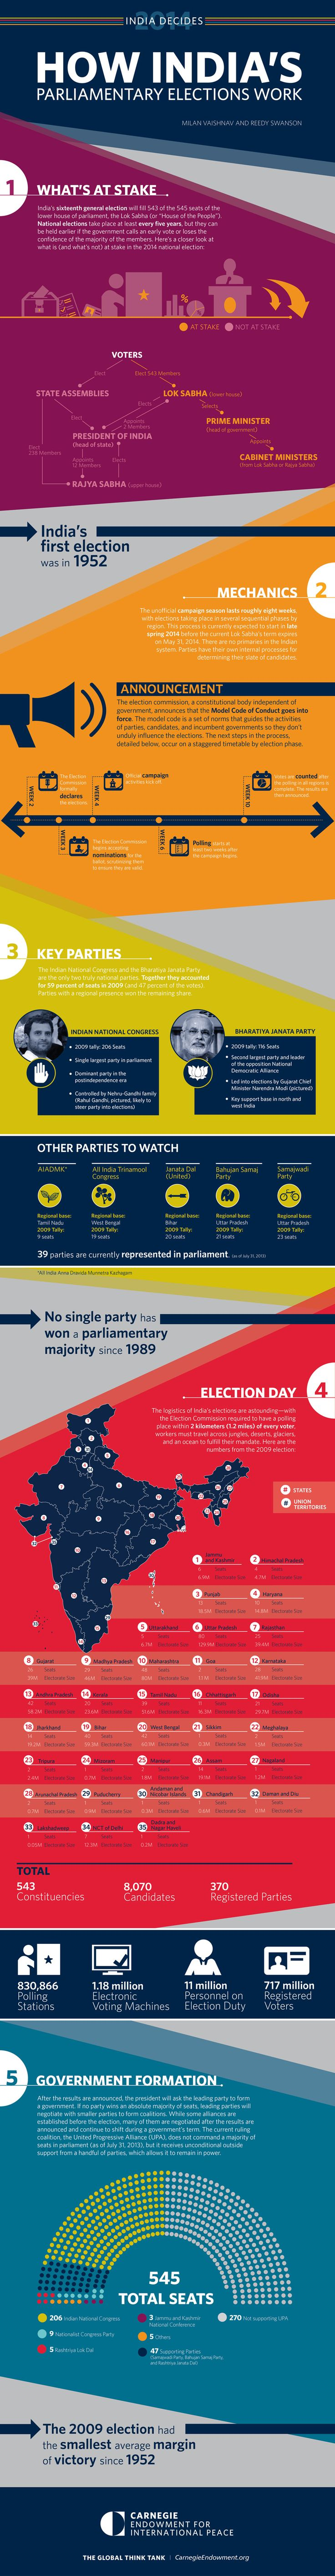 India is gearing up for the largest democratic exercise ever recorded—its 2014 parliamentary election. A new infographic explains what's at ...